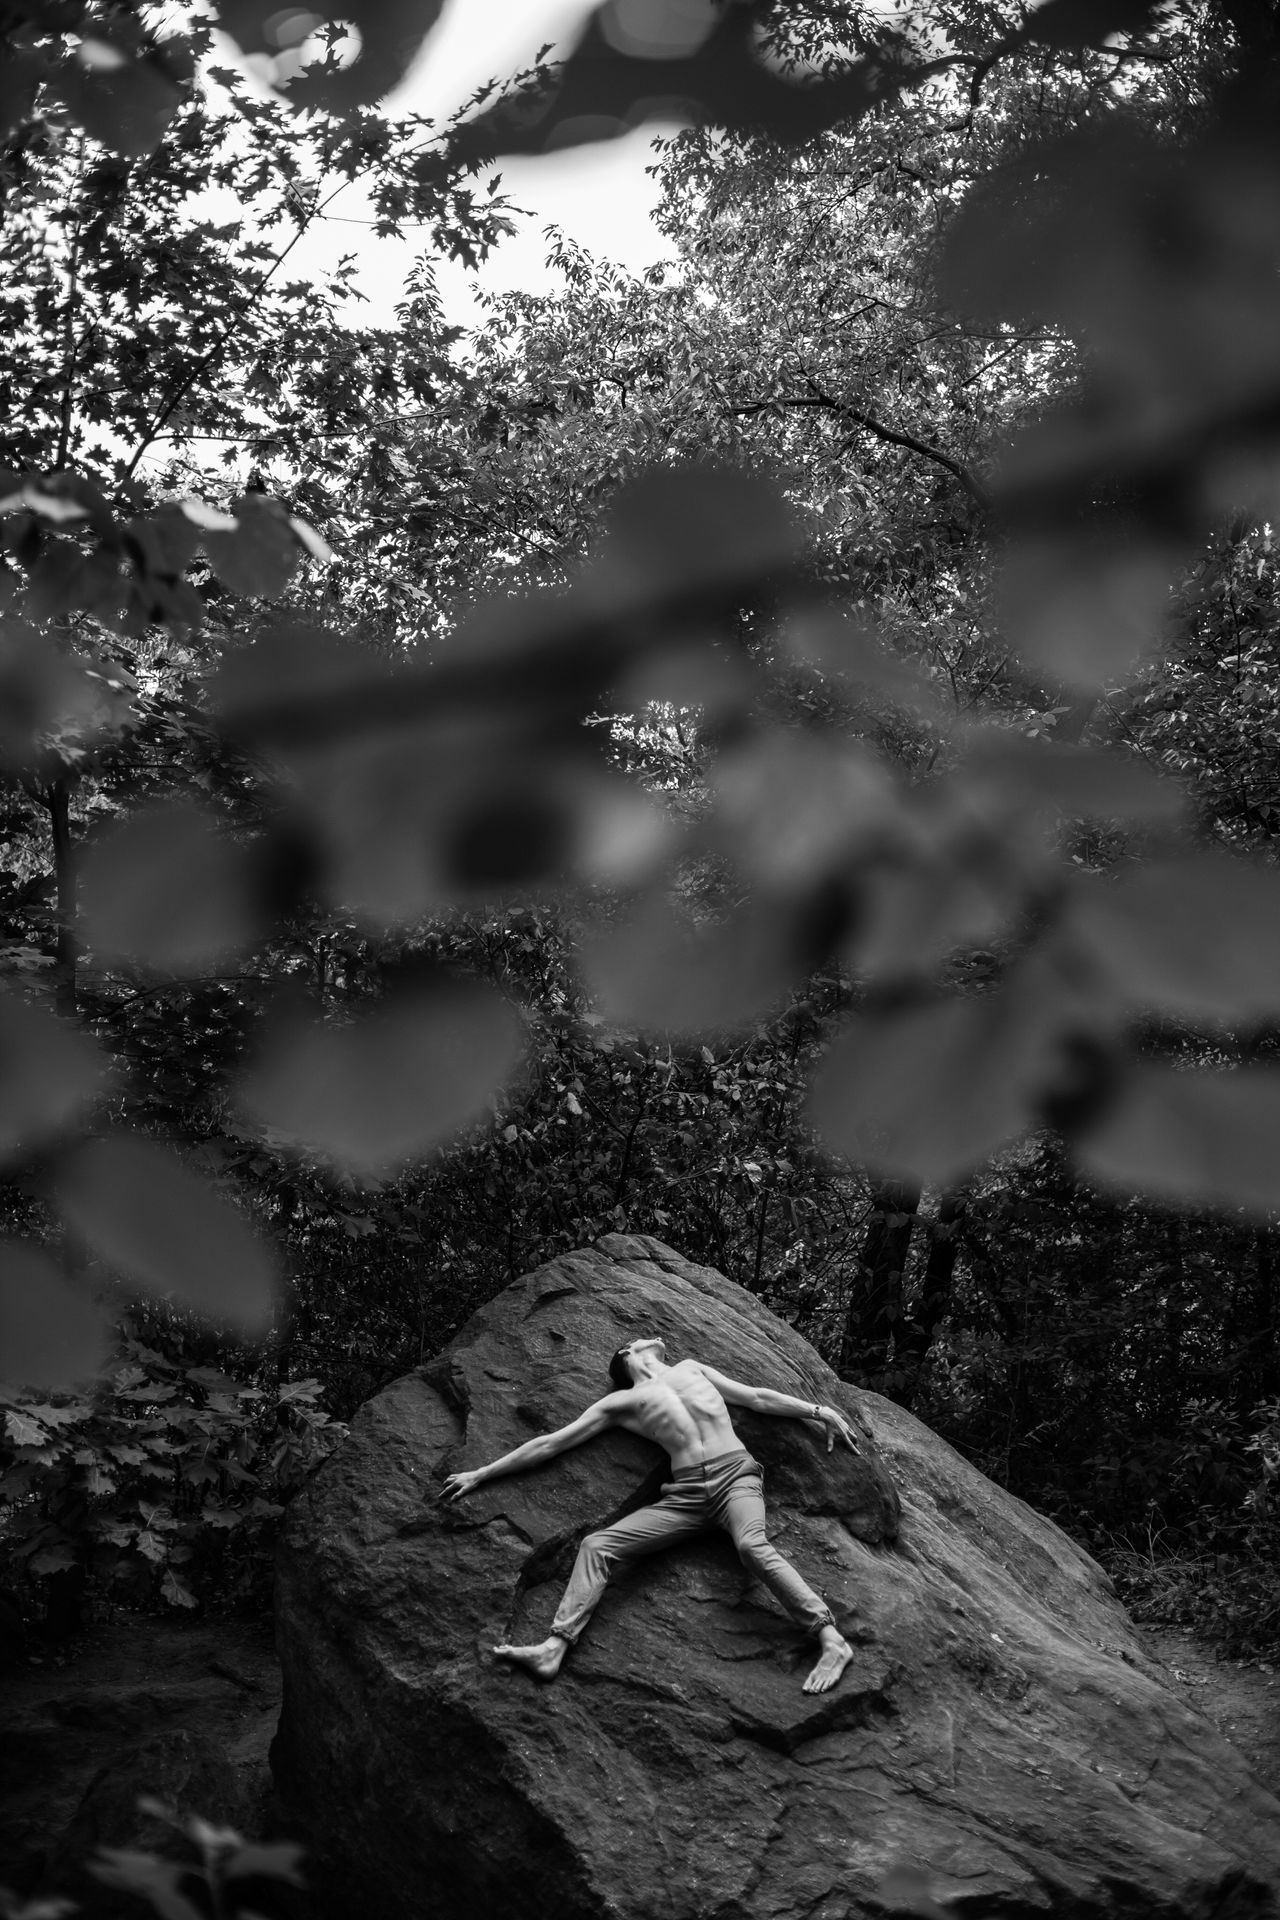 Nature One Person Outdoors Beauty In Nature Adults Only Natural Light Portrait NYC Portrait Photography The City Light EyeEmNewHere. Photooftheday Relaxation Black And White Photography Black & White Landscape Nycphotographer Artist EyeEmNewHere Welcome Weekly